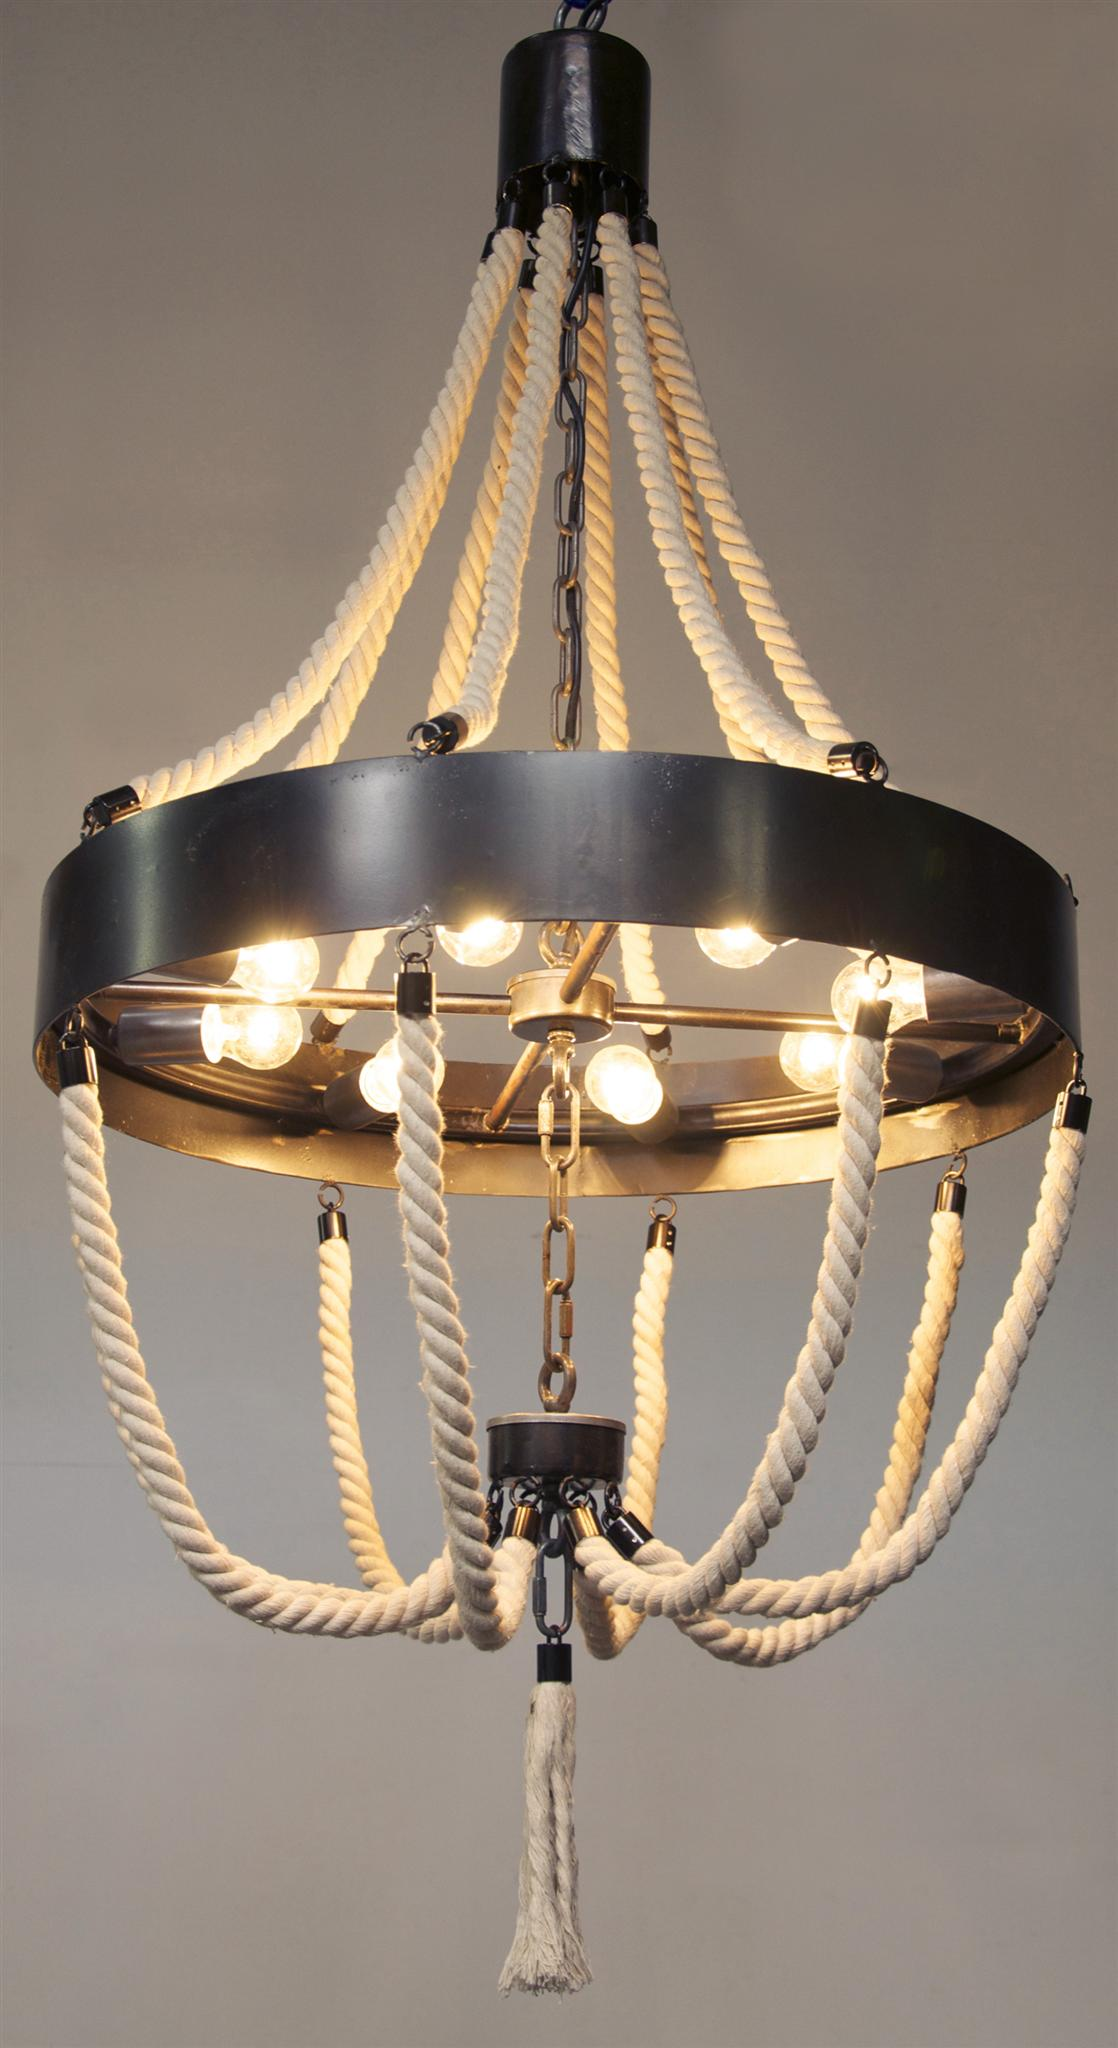 Rope chandelier gallery light fixtures and chandeliers design alec chandelier metal and rope chandeliers noir download image arubaitofo gallery arubaitofo Image collections